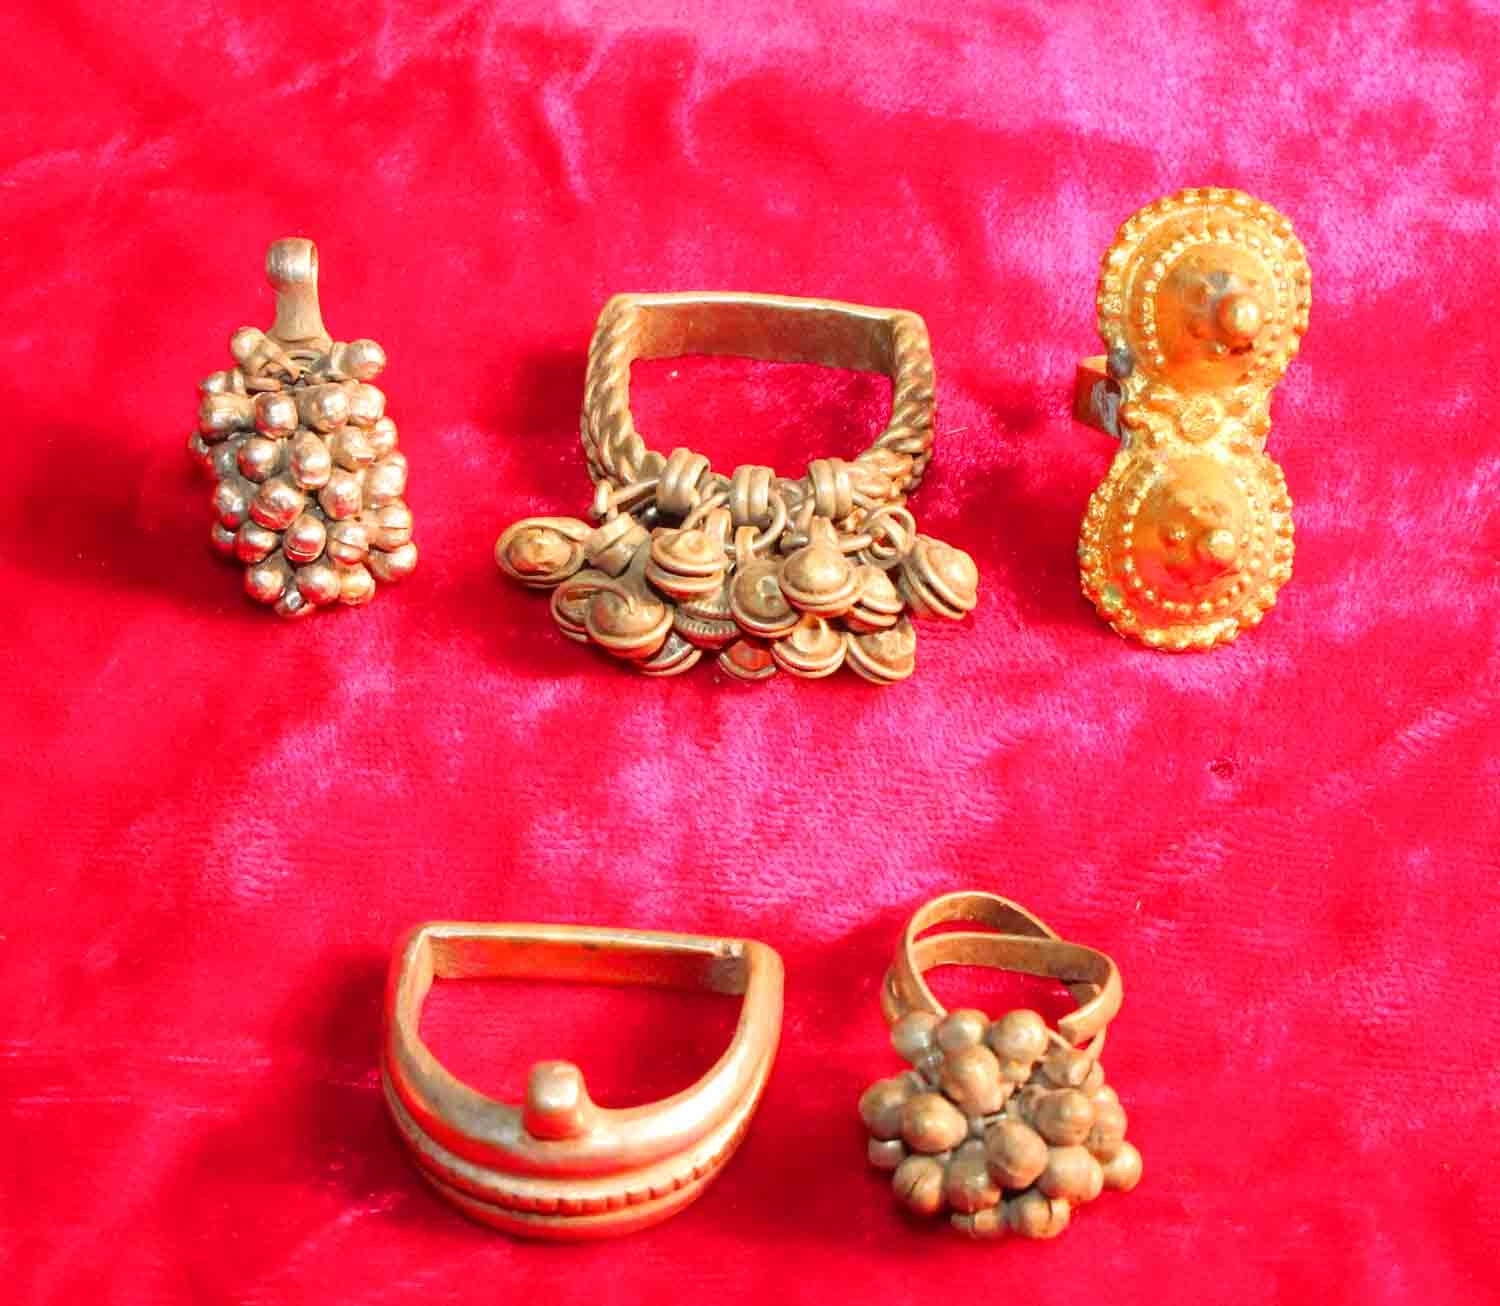 5 Antique Copper Bells Cluster Toe Ring Indian Ethnic Bellydance Throughout Recent Ethnic Toe Rings (Gallery 4 of 15)